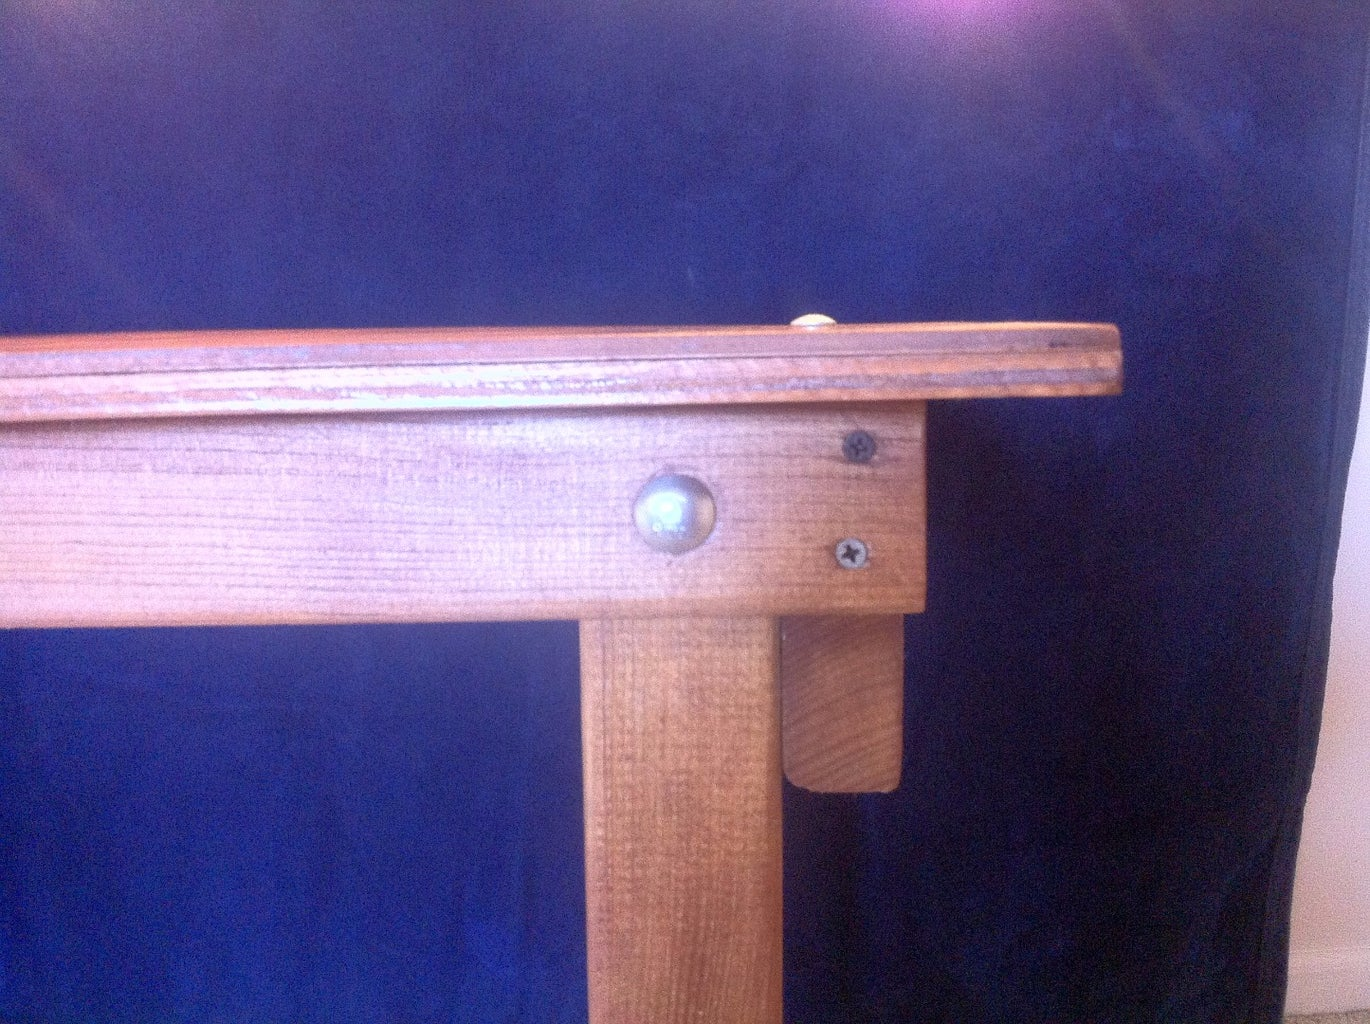 MOUNT TOP AND DRILL LOCKING HOLES